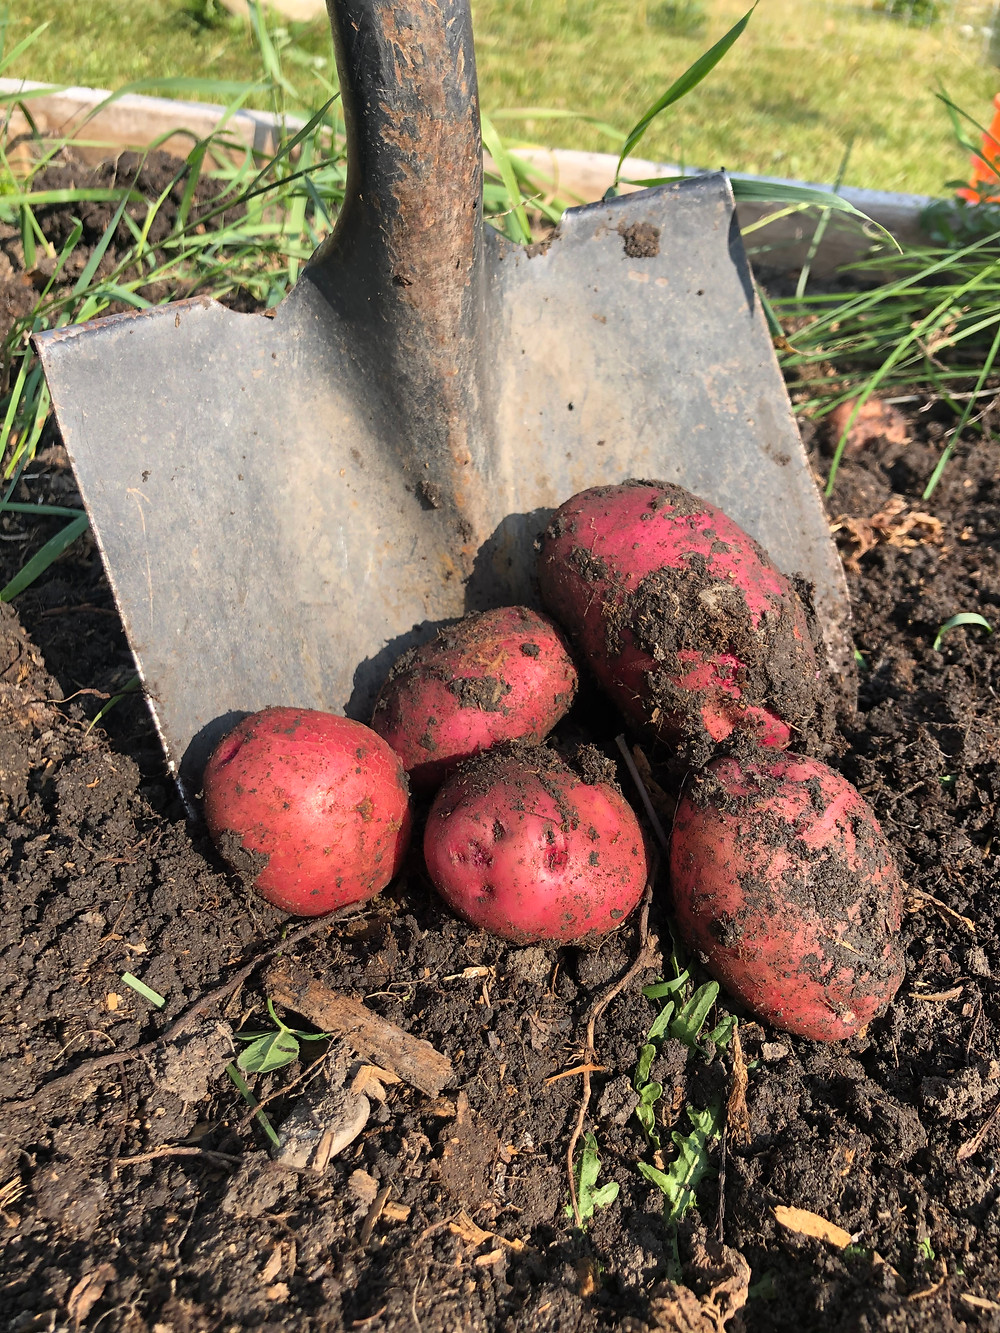 Determinate red pontiac garden potatoes being dug out of a raised bed in a backyard, vegetable garden in gardening zone 3 Alberta, Canada.